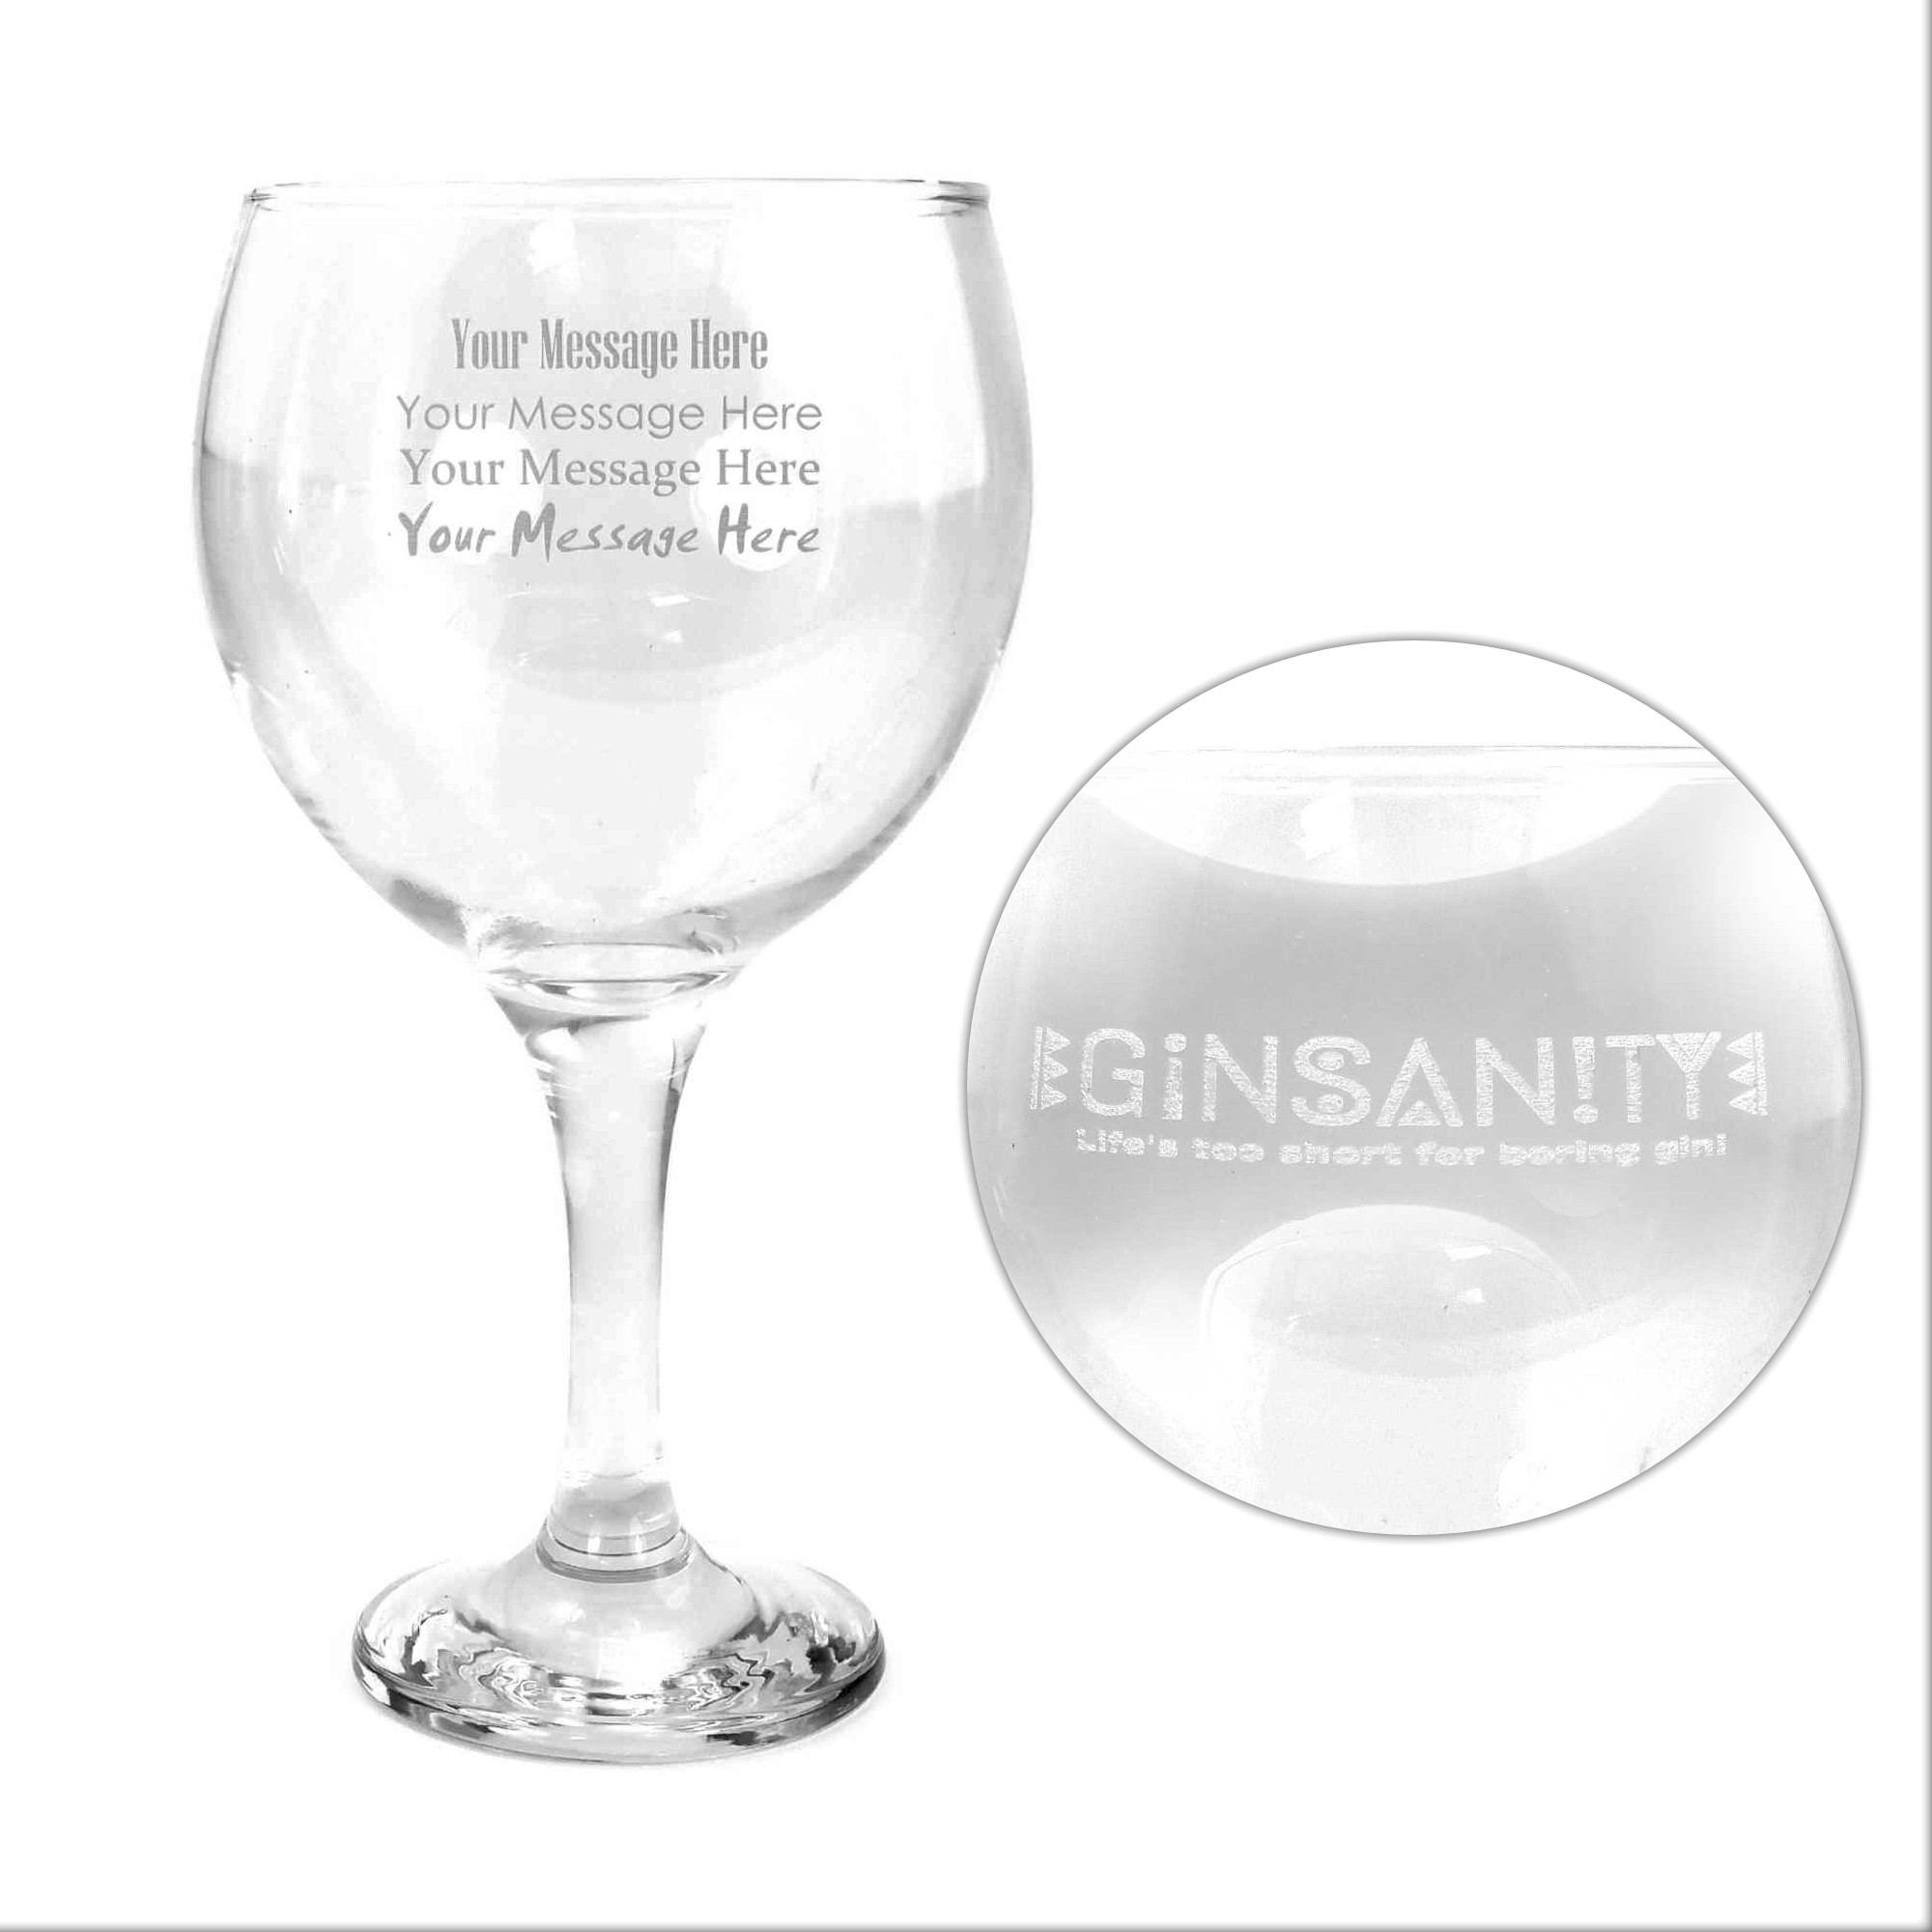 The Ginsanity Copa Gin Glass Optional Engraving Ginsanity